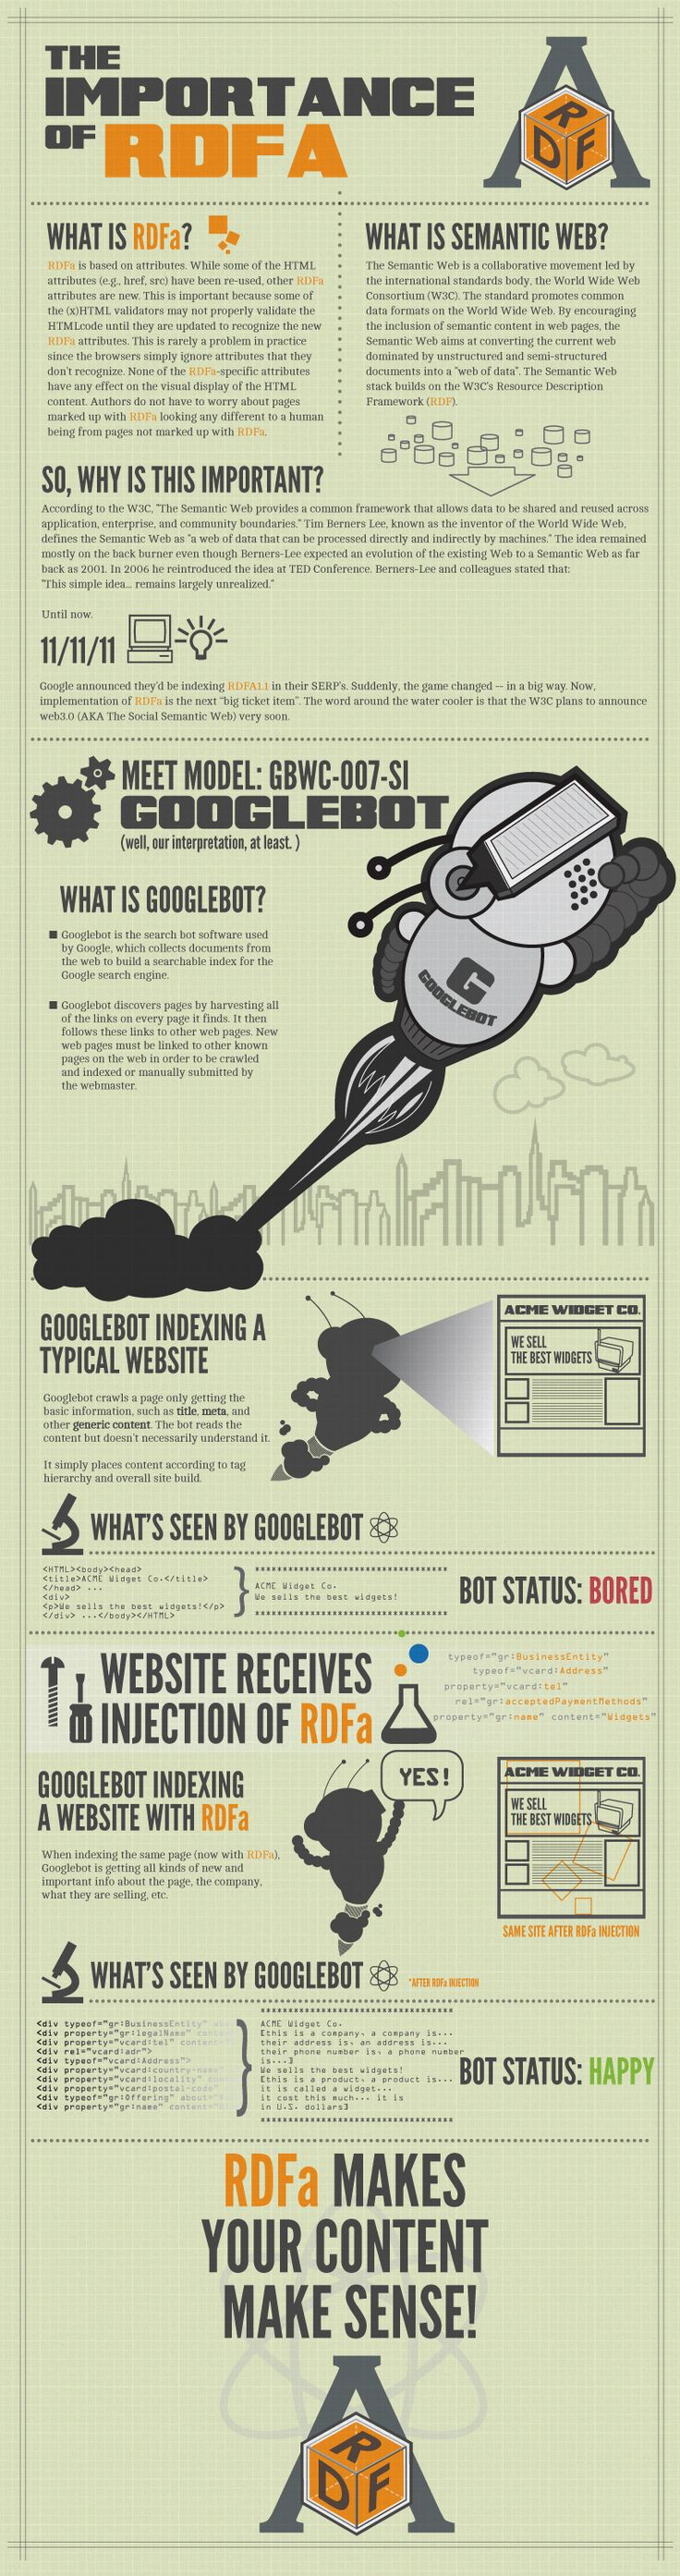 what is the semantic web? what is RDFa? How does it play with Google? What does that mean for seo? #seo #semanticweb